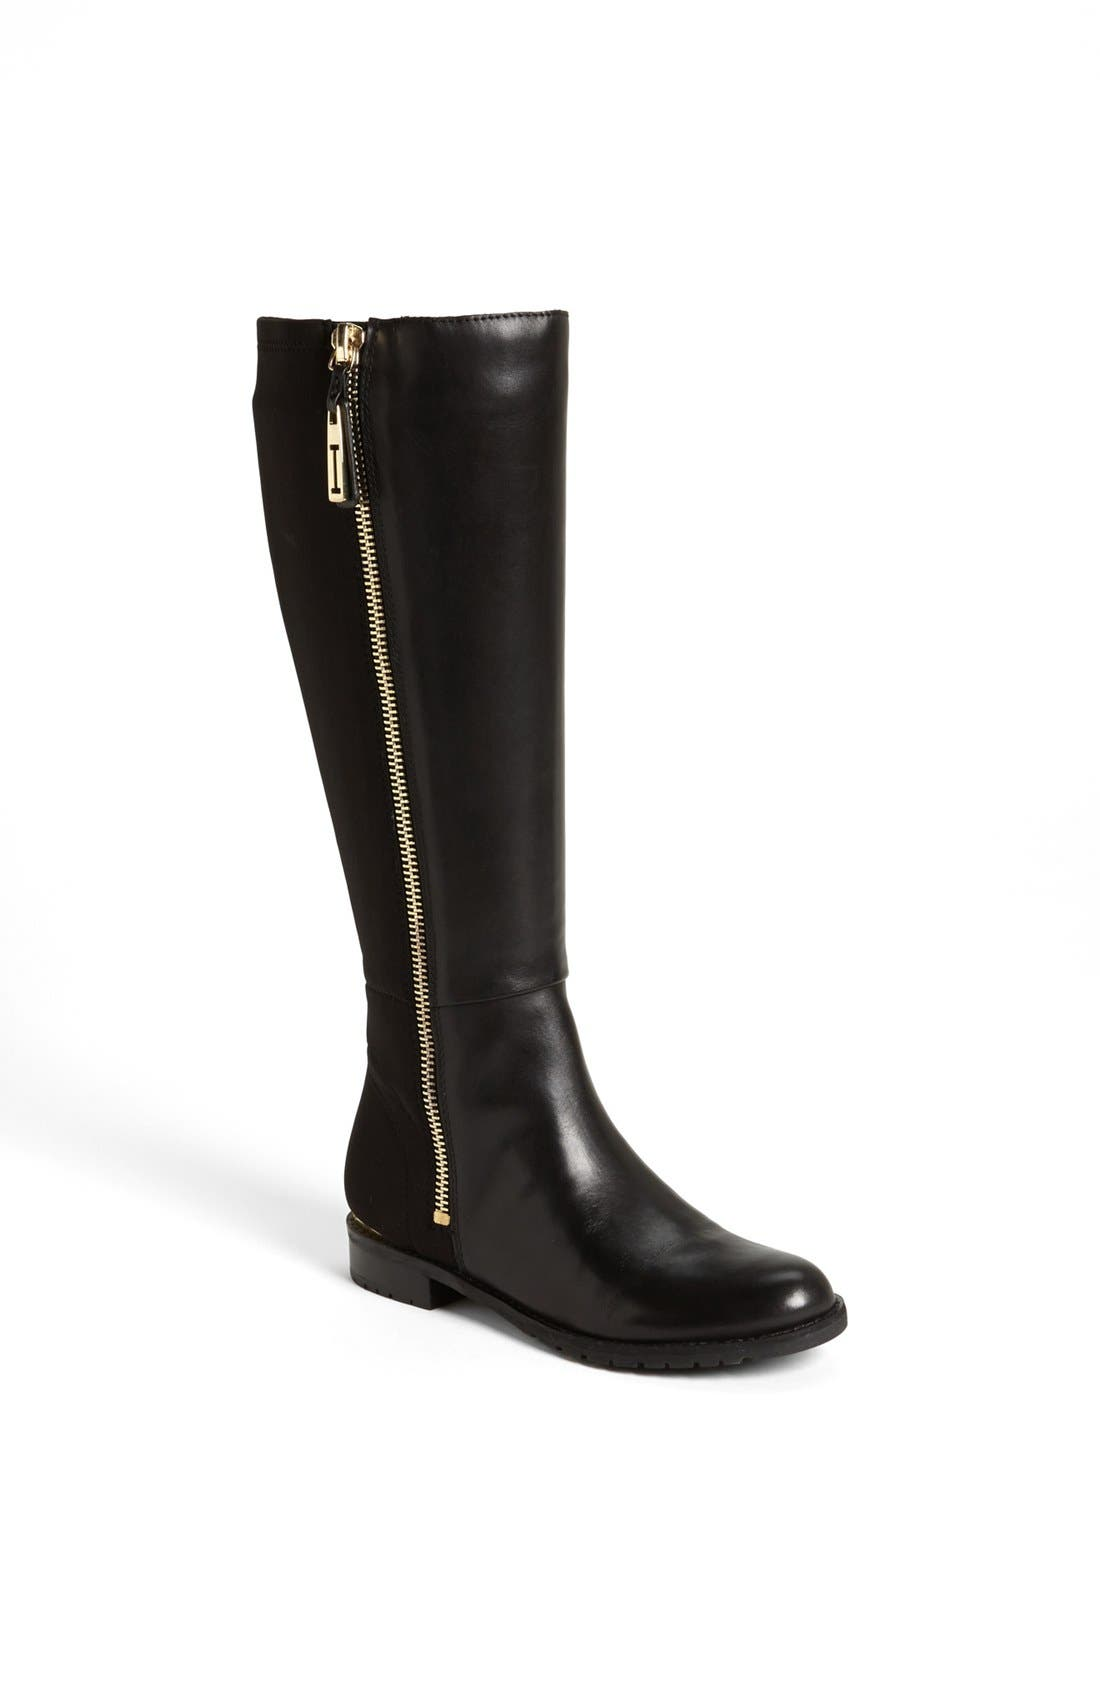 'Arno' Lycra<sup>®</sup> Stretch Boot,                             Main thumbnail 1, color,                             001